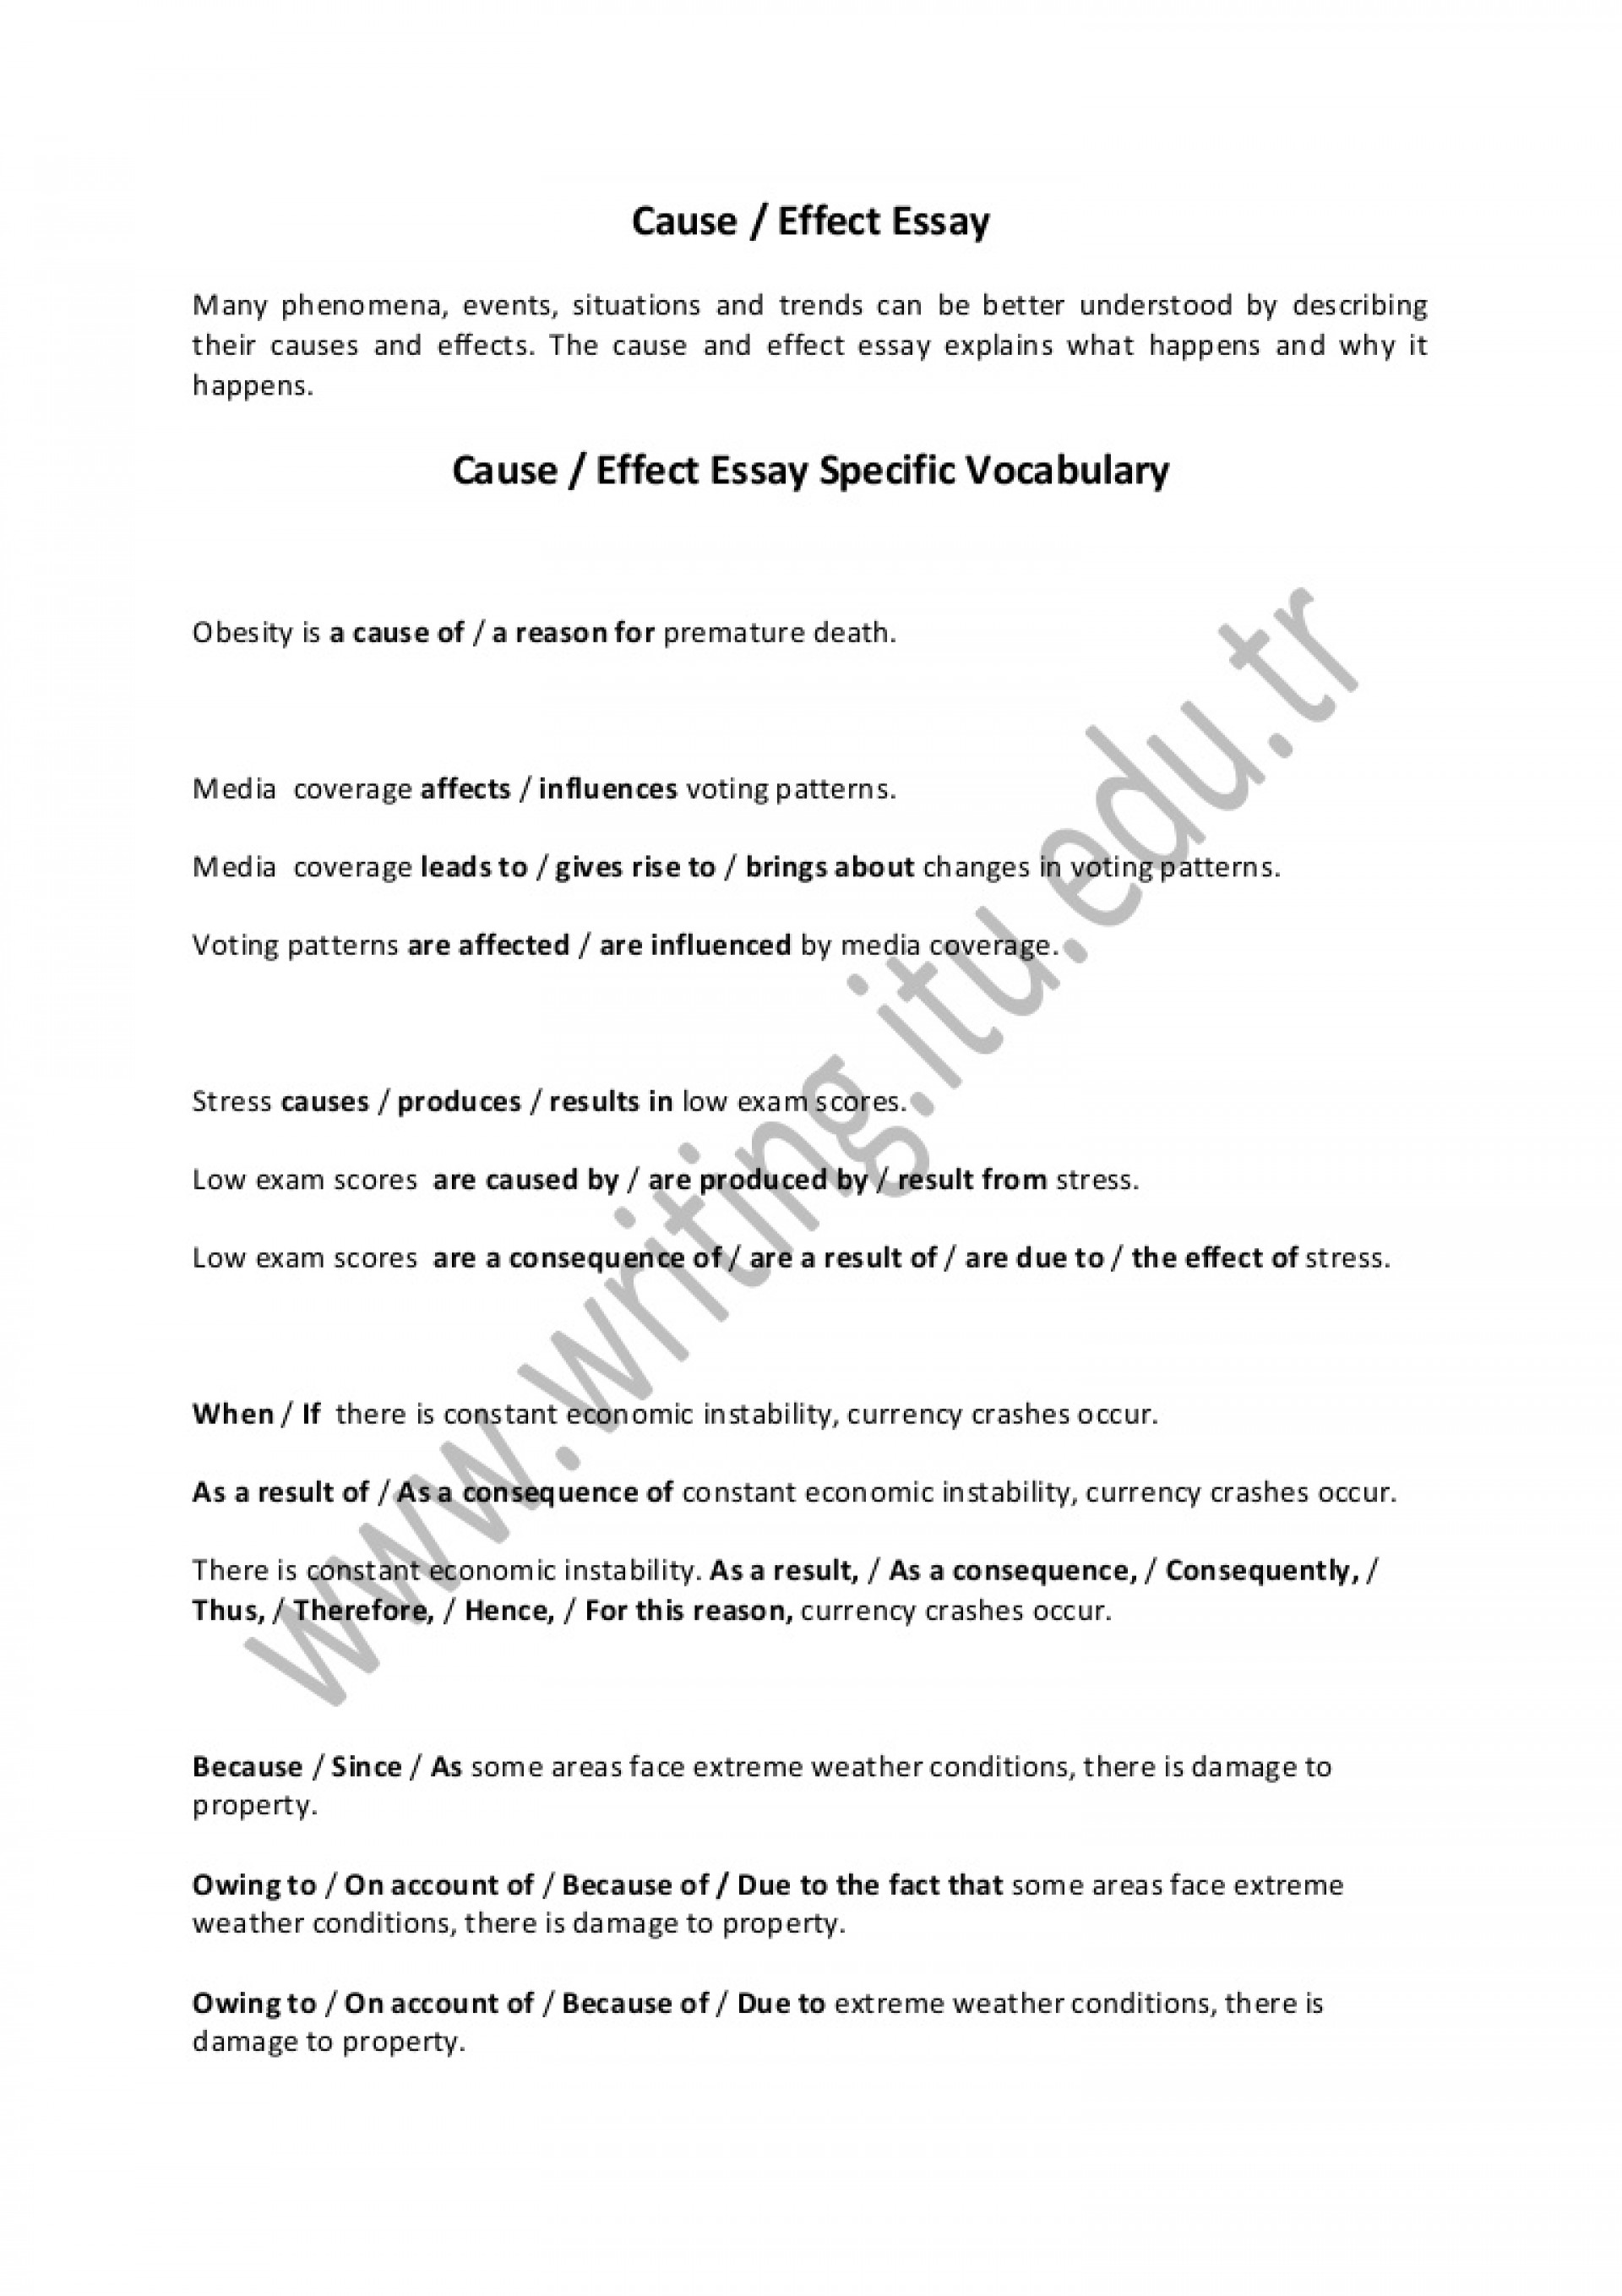 019 Essay Example Causeandeffectessay Thumbnail Cause And Effect Amazing Examples On Stress Pdf 1920